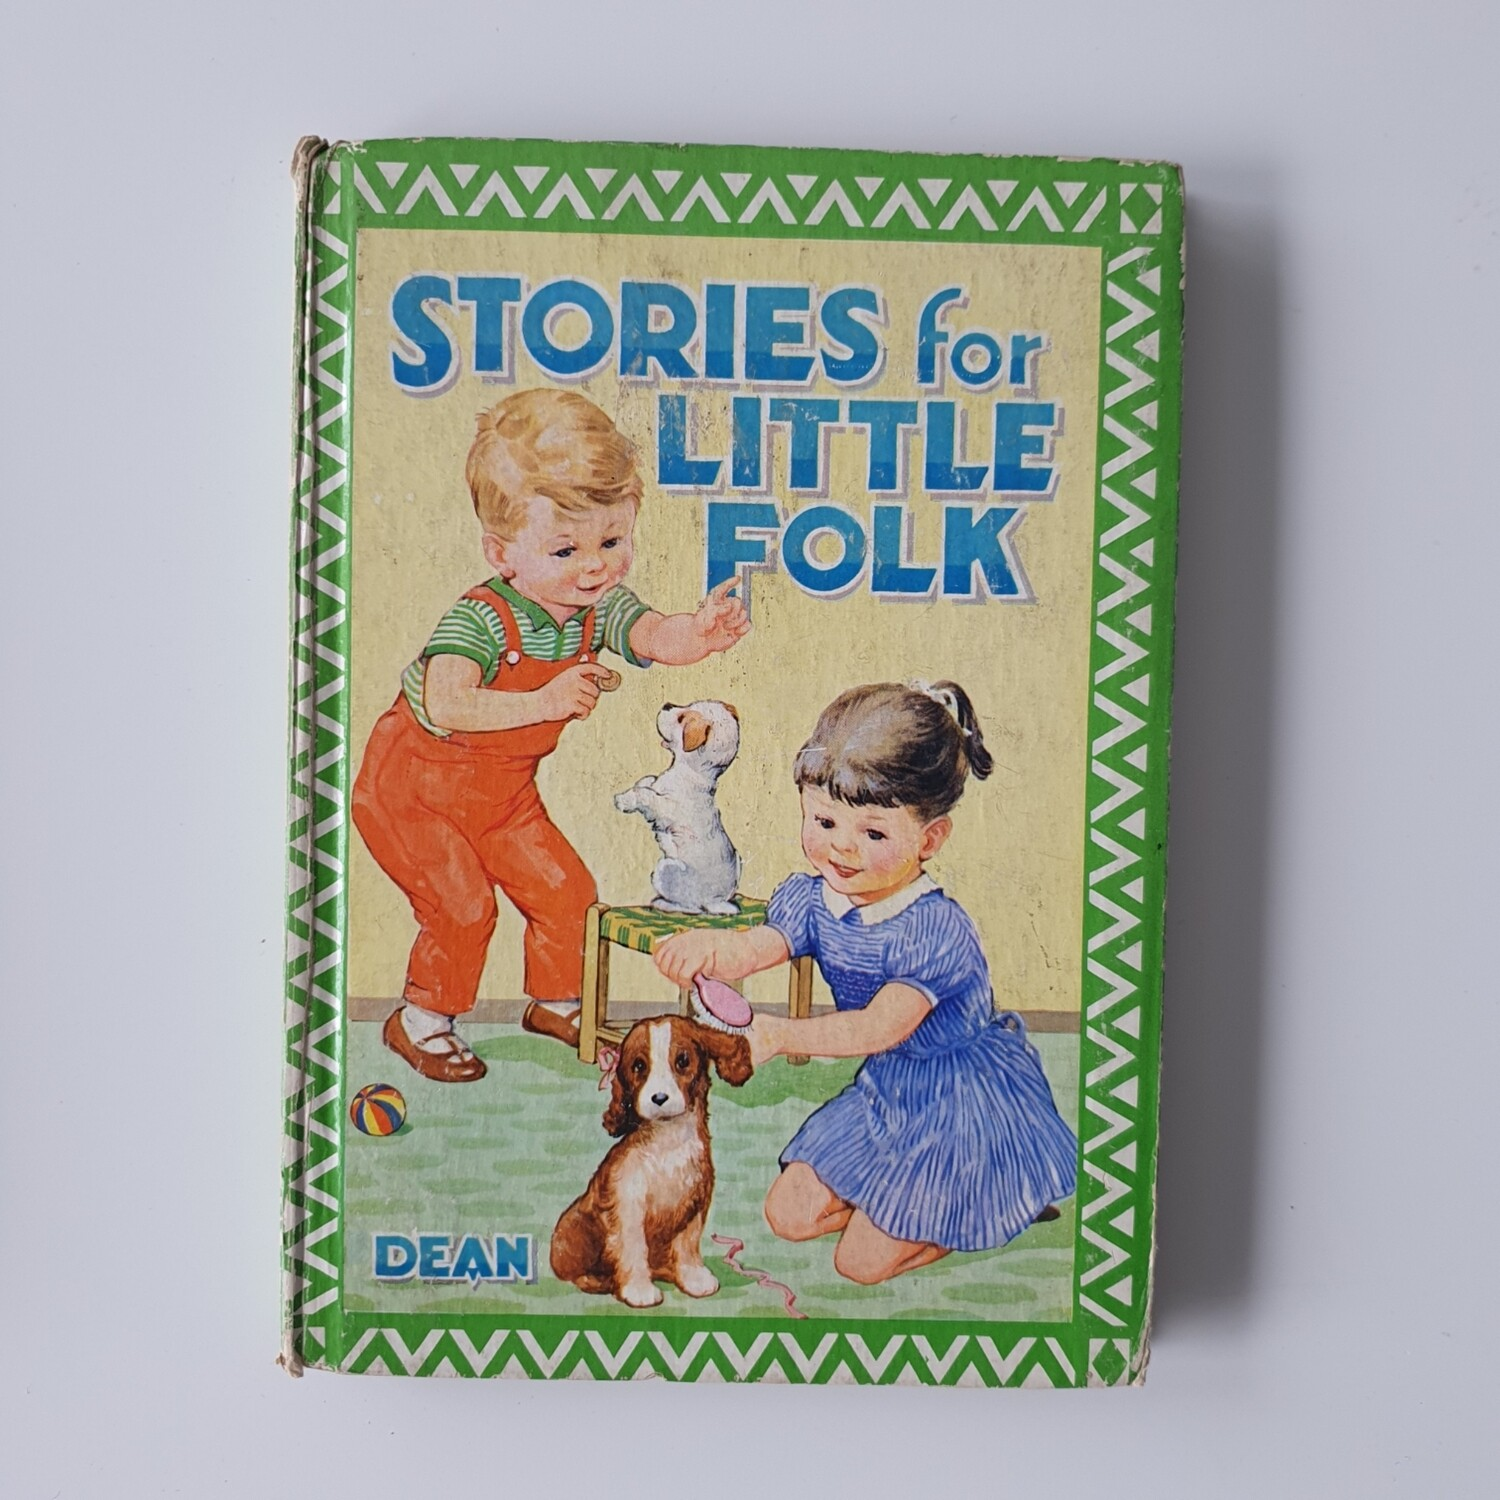 Dean's 1960s children's Books  - choose from a selection